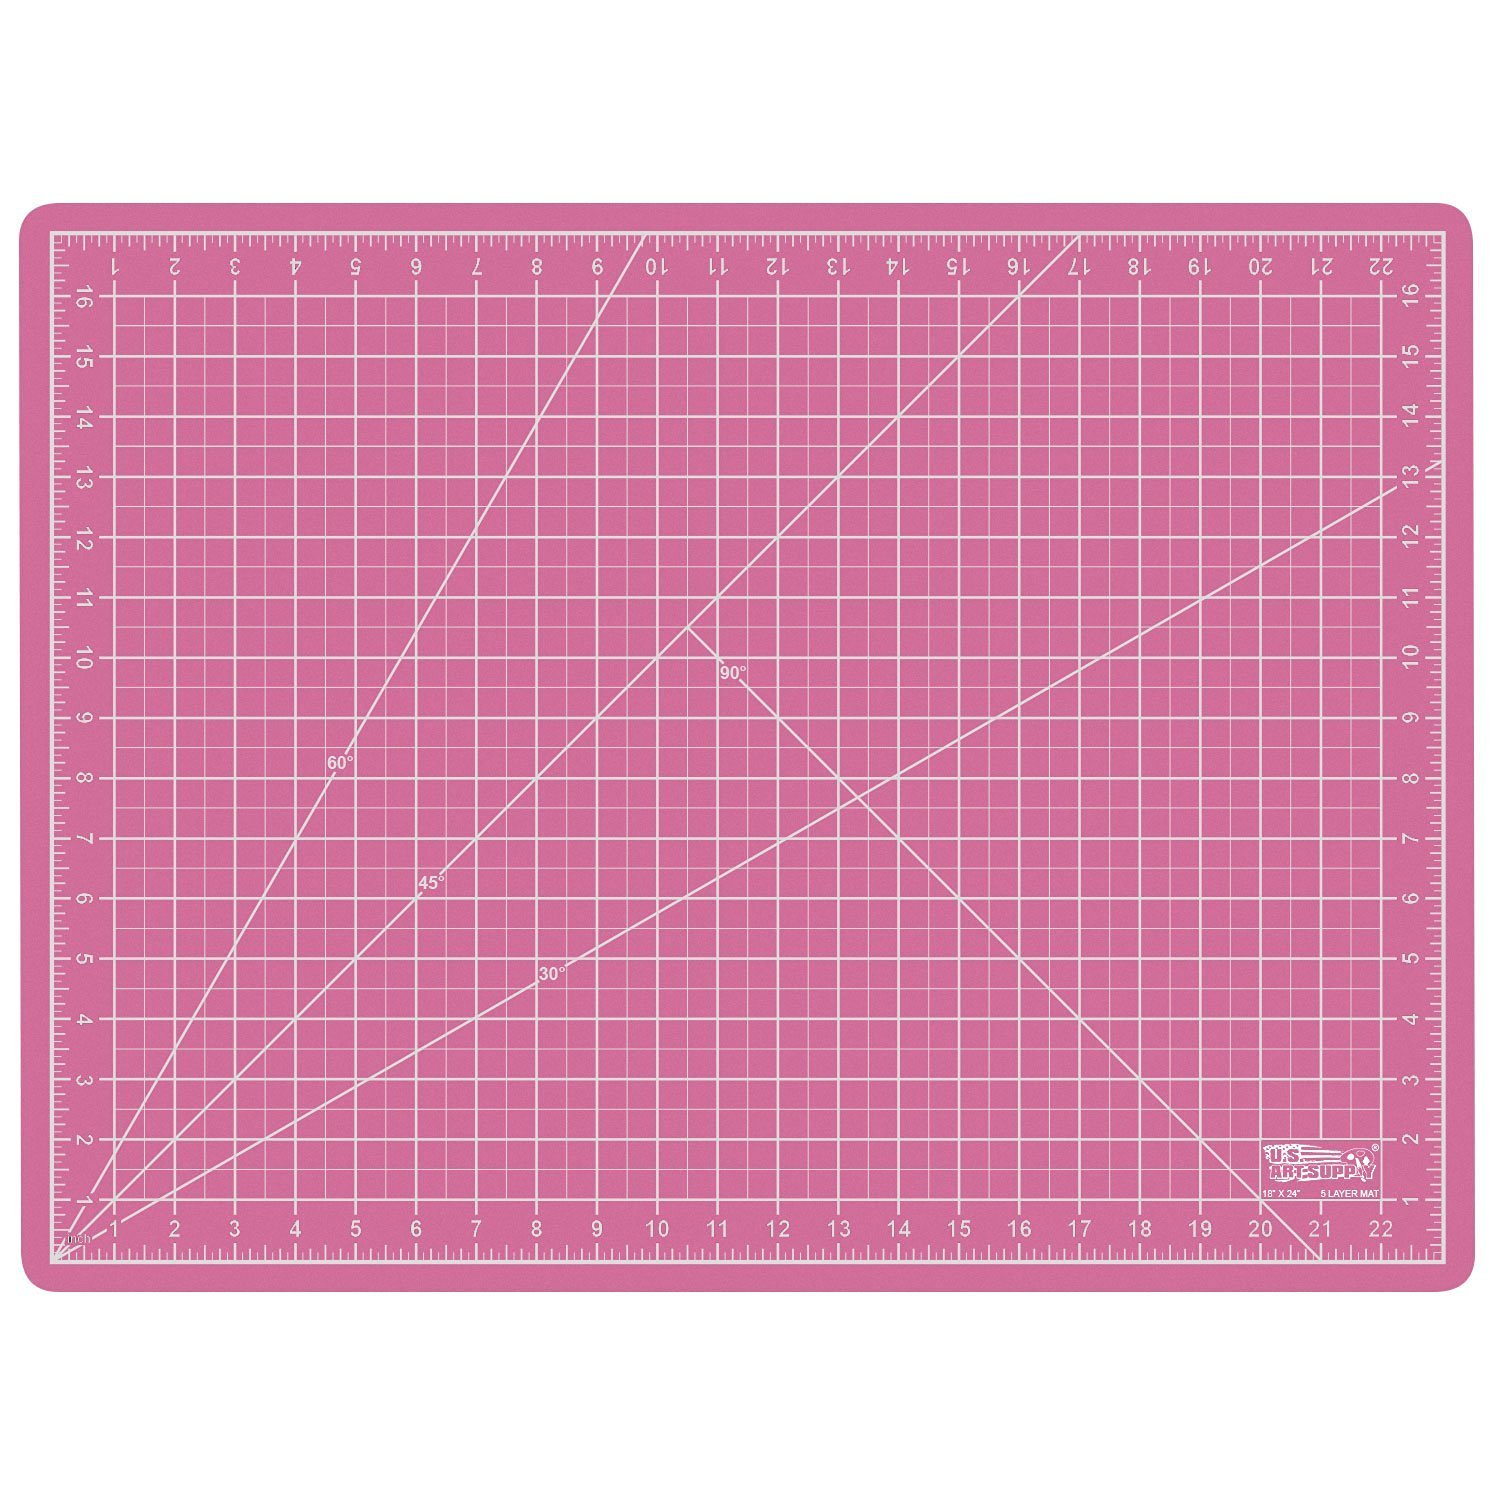 US Art Supply 18 x 24 PINK/BLUE Professional Self Healing 5-Ply Double Sided Durable Non-Slip PVC Cutting Mat Great for Scrapbooking, Quilting, Sewing and all Arts & Crafts Projects CM-18X24-PB